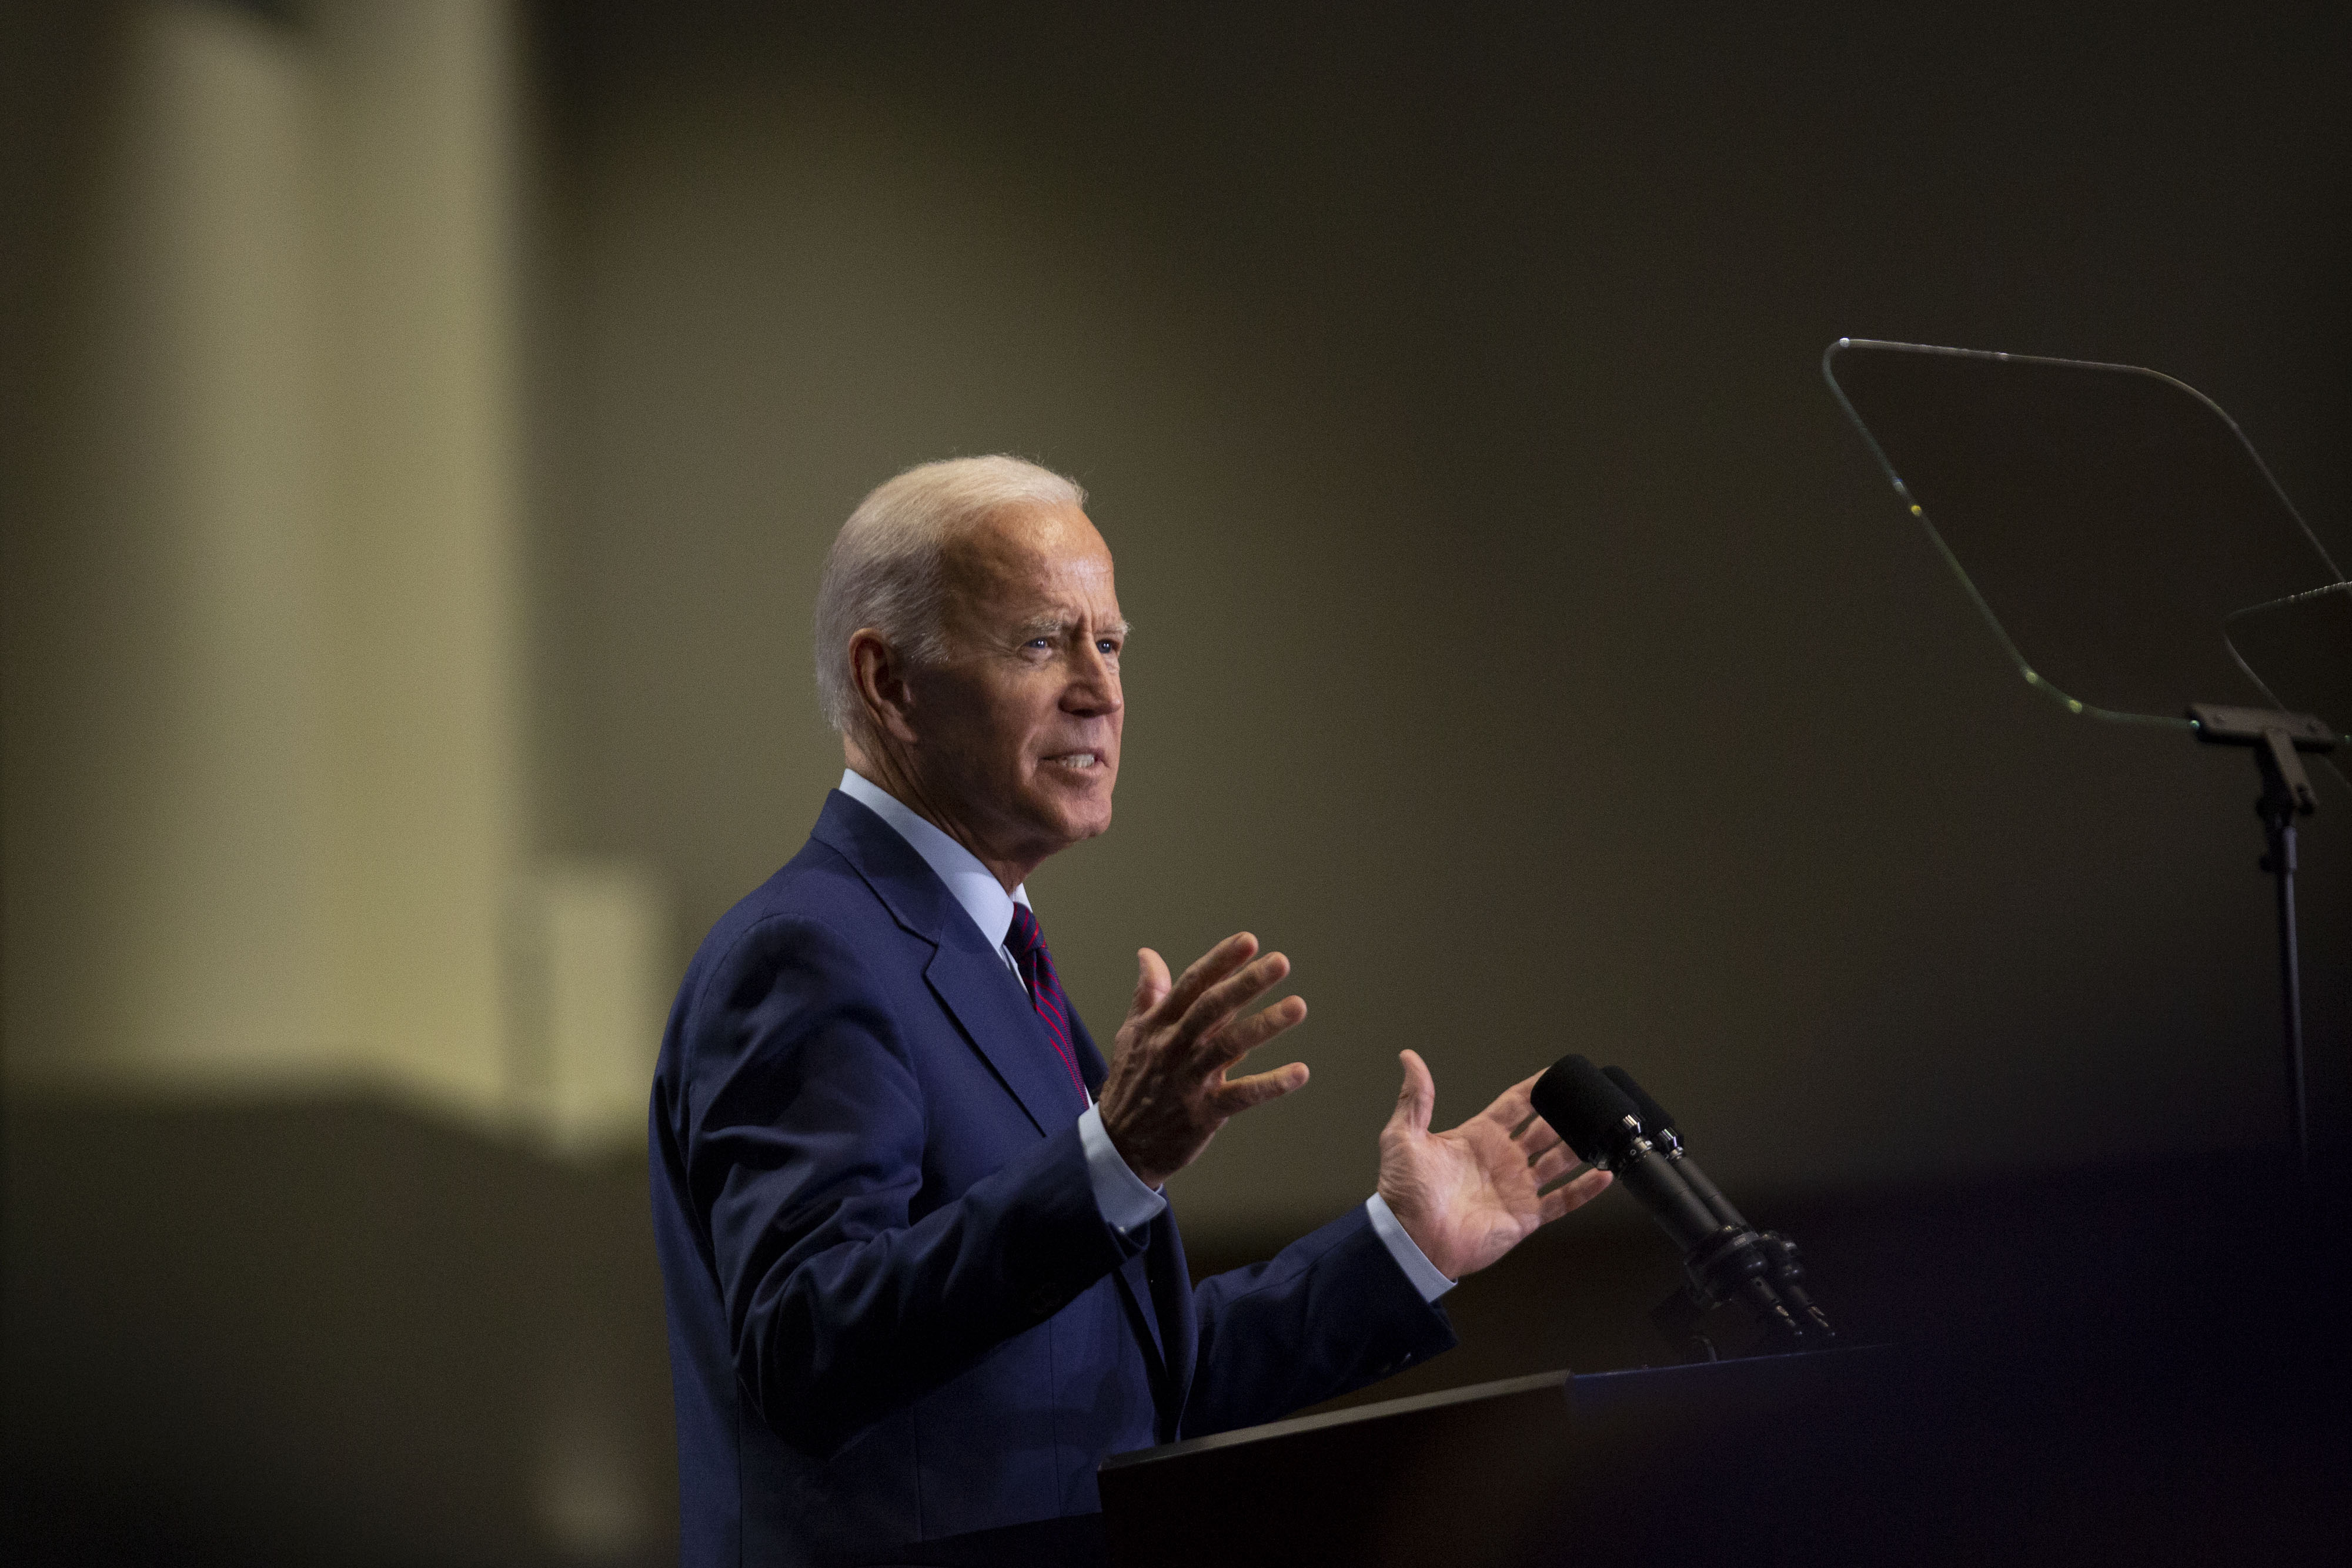 Former U.S. Vice President Joe Biden, a 2020 Democratic presidential candidate, speaks during the Rainbow PUSH Coalition Annual International Convention in Chicago, Illinois, U.S., on Friday, June 28, 2019.